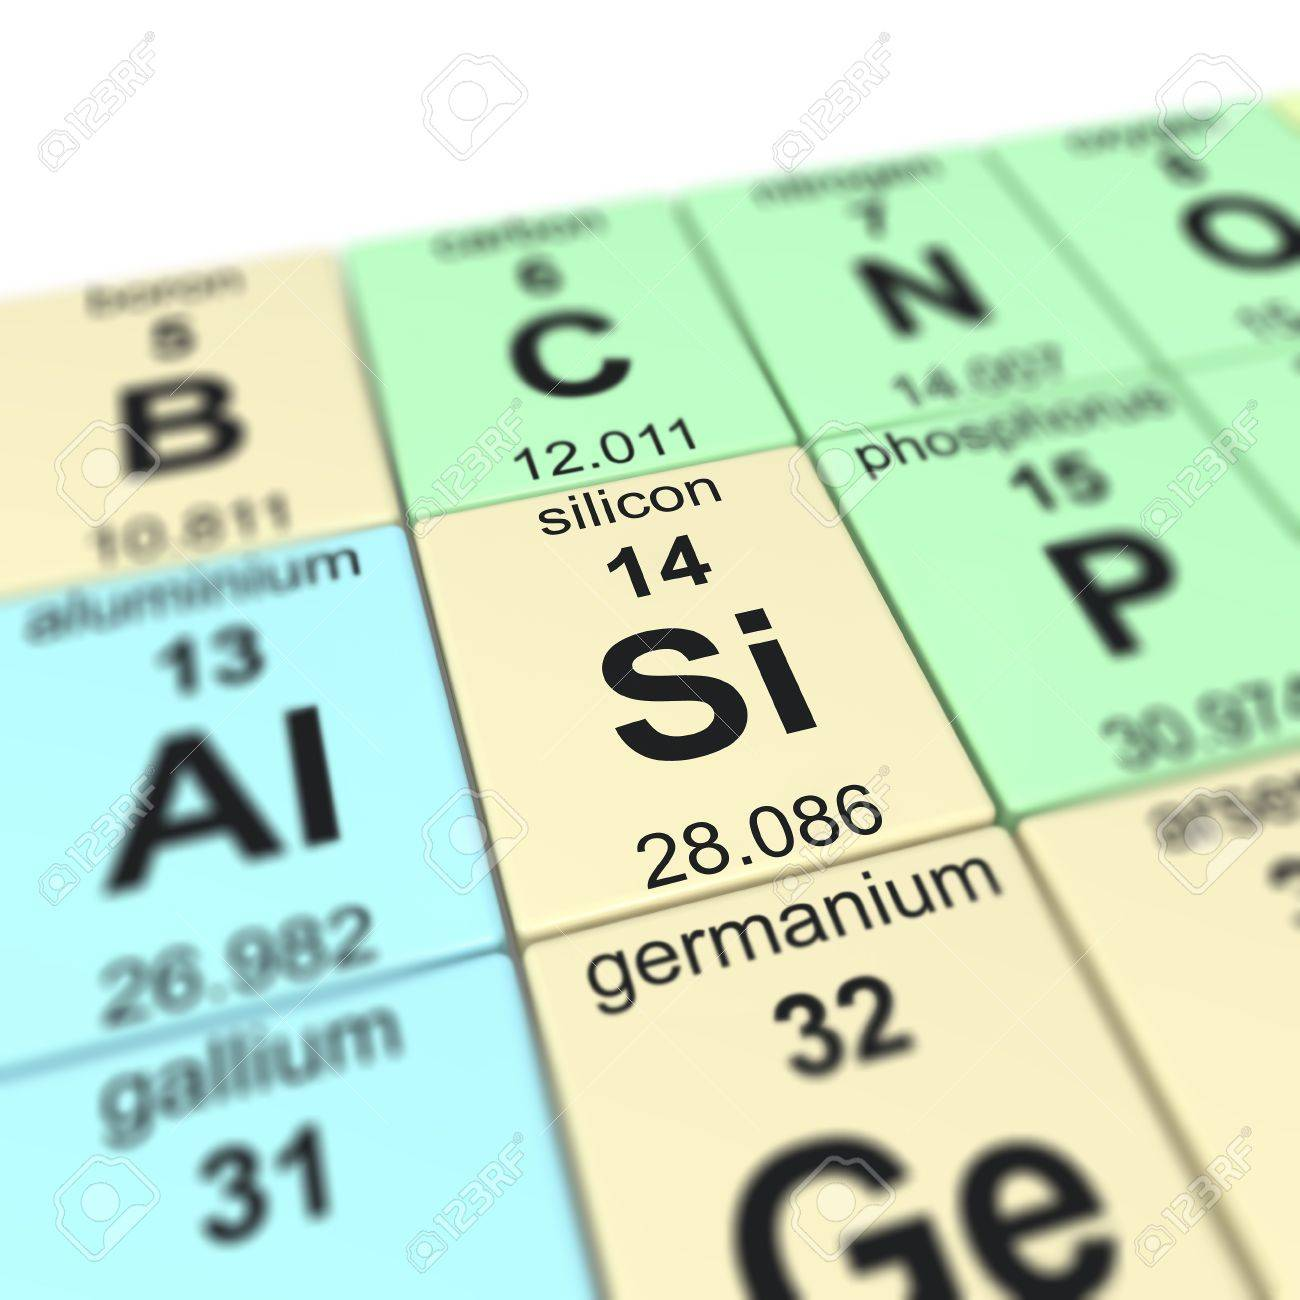 Periodic table of elements focused on silicon stock photo periodic table of elements focused on silicon stock photo 20109190 gamestrikefo Image collections